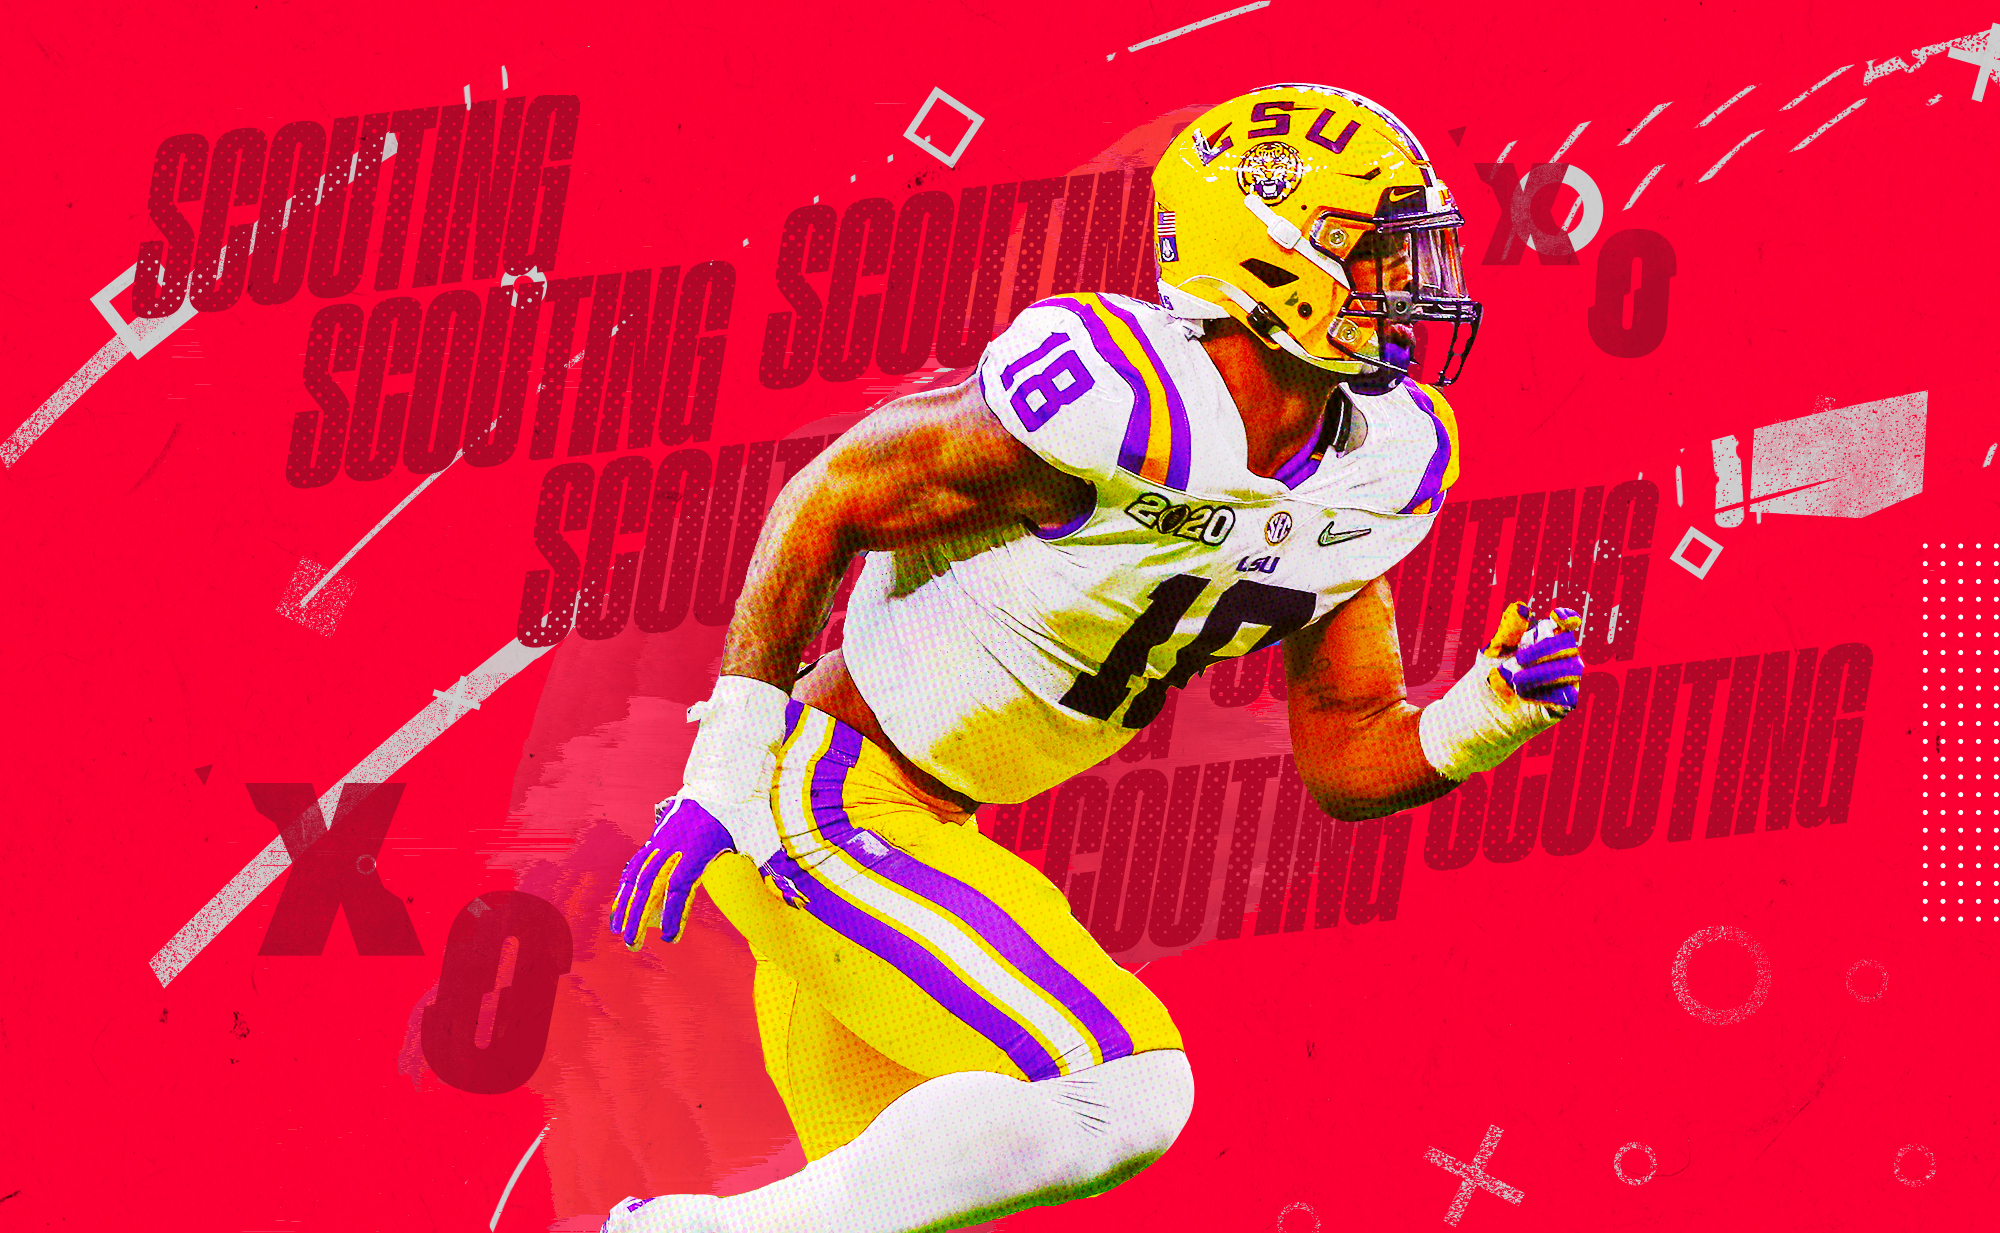 """An illustration of NFL edge prospect K'Lavon Chaisson running at LSU, superimposed on a red background with """"SCOUTING"""" and """"X""""s and """"O""""s in gray lettering"""